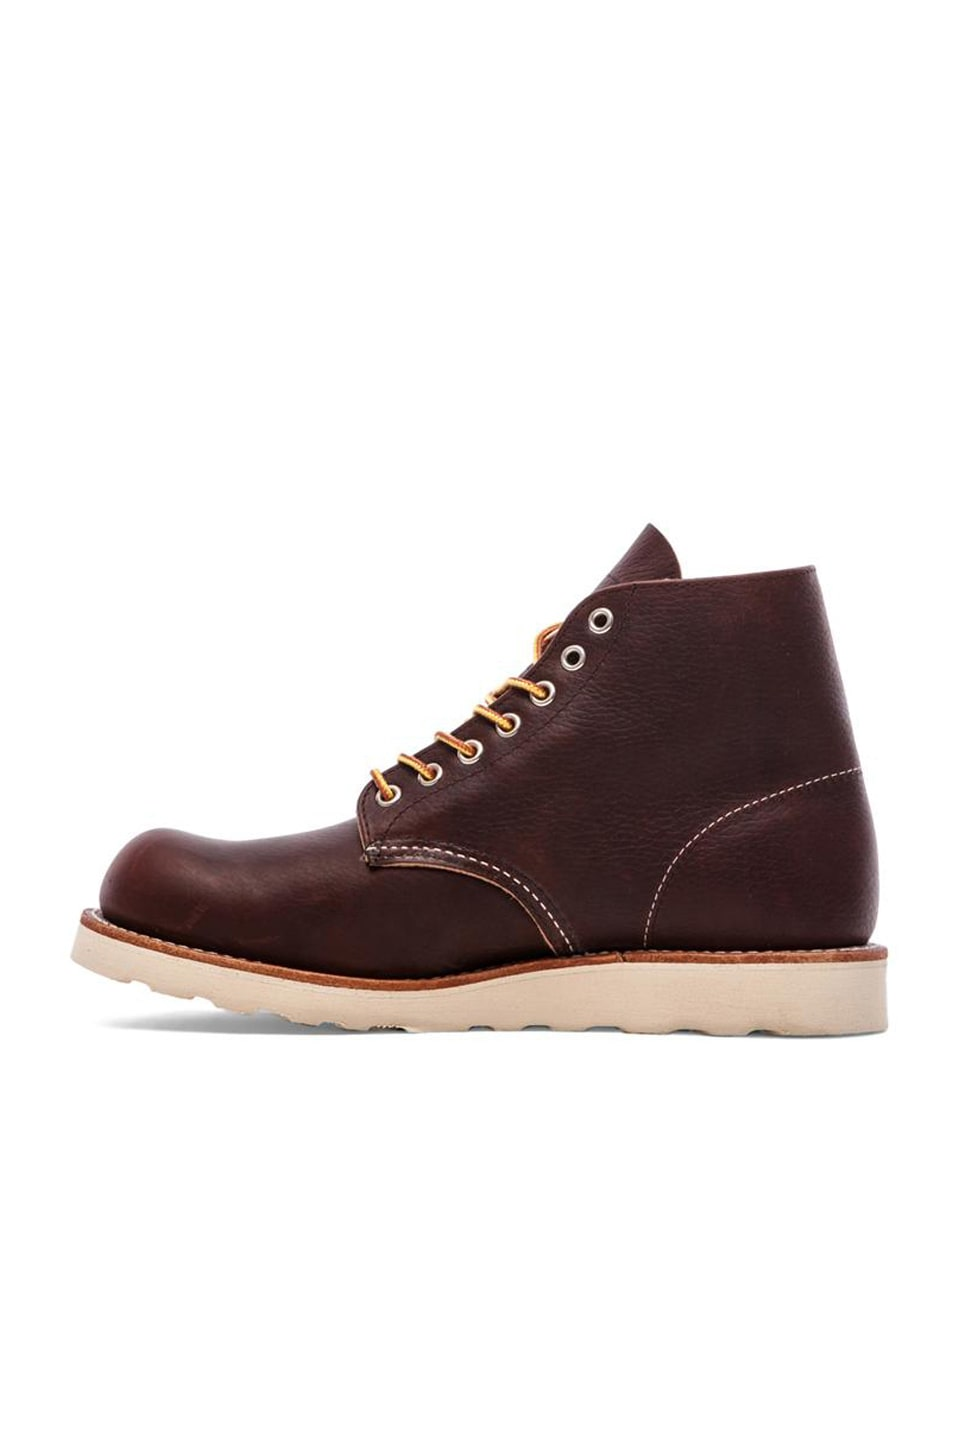 "Red Wing Shoes 6"" Round Toe in Briar Oil"